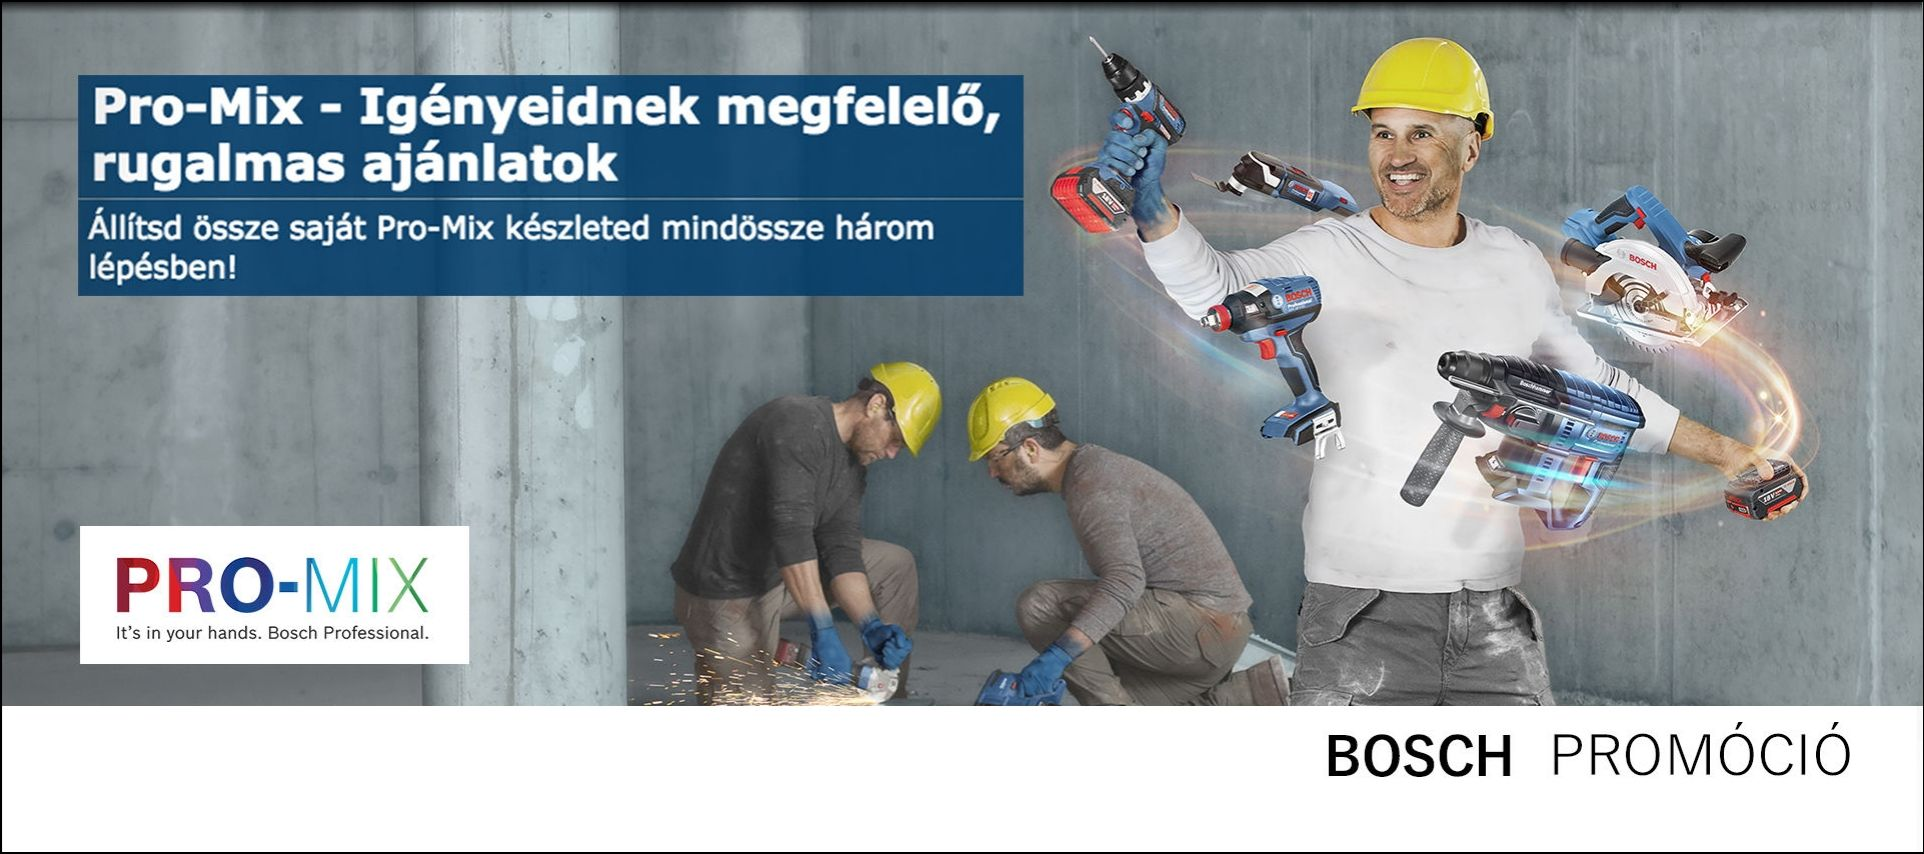 Robert Bosch Power Tools promóció